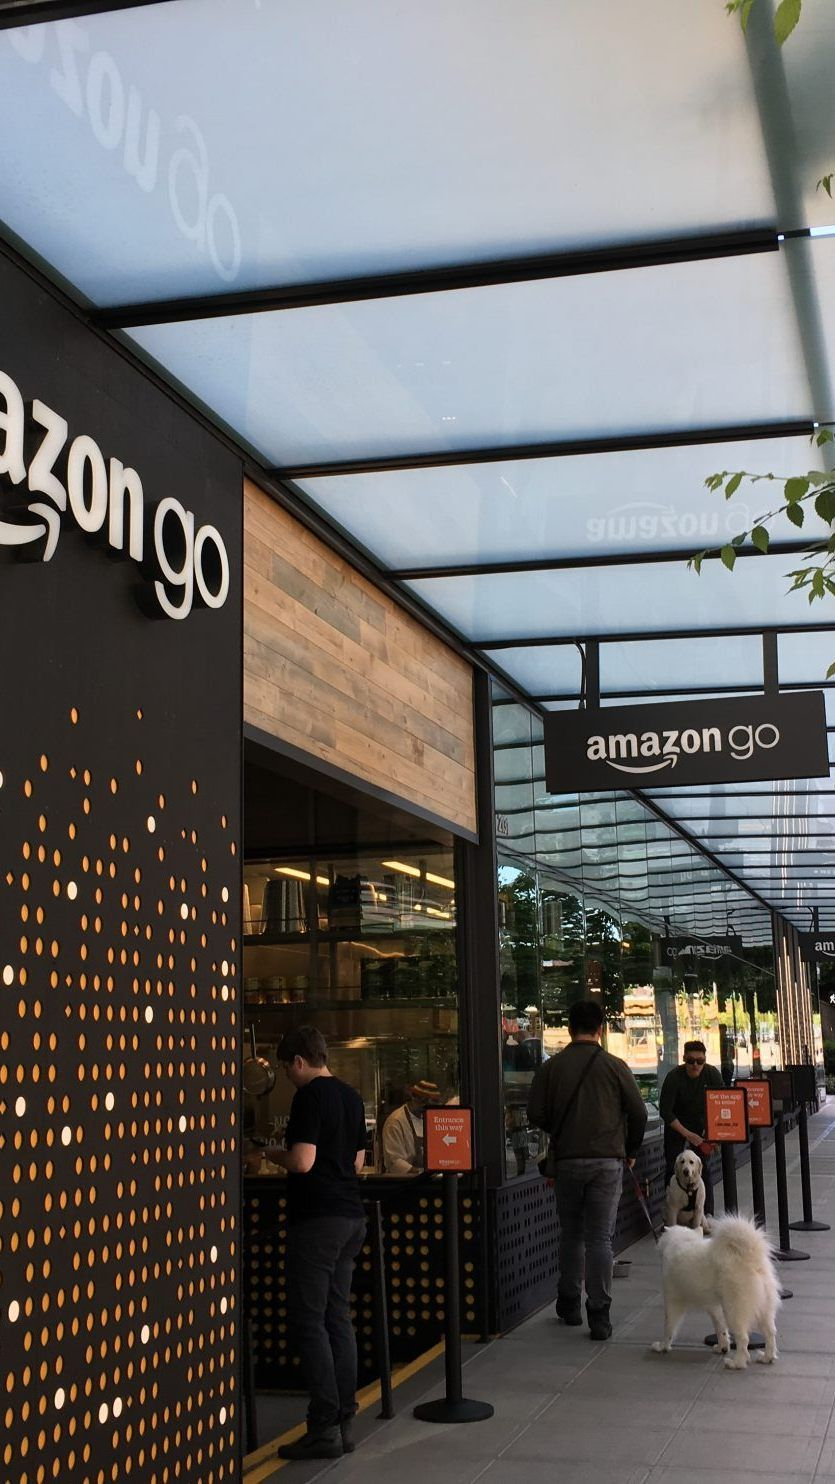 Amazon Go Store in Seattle.